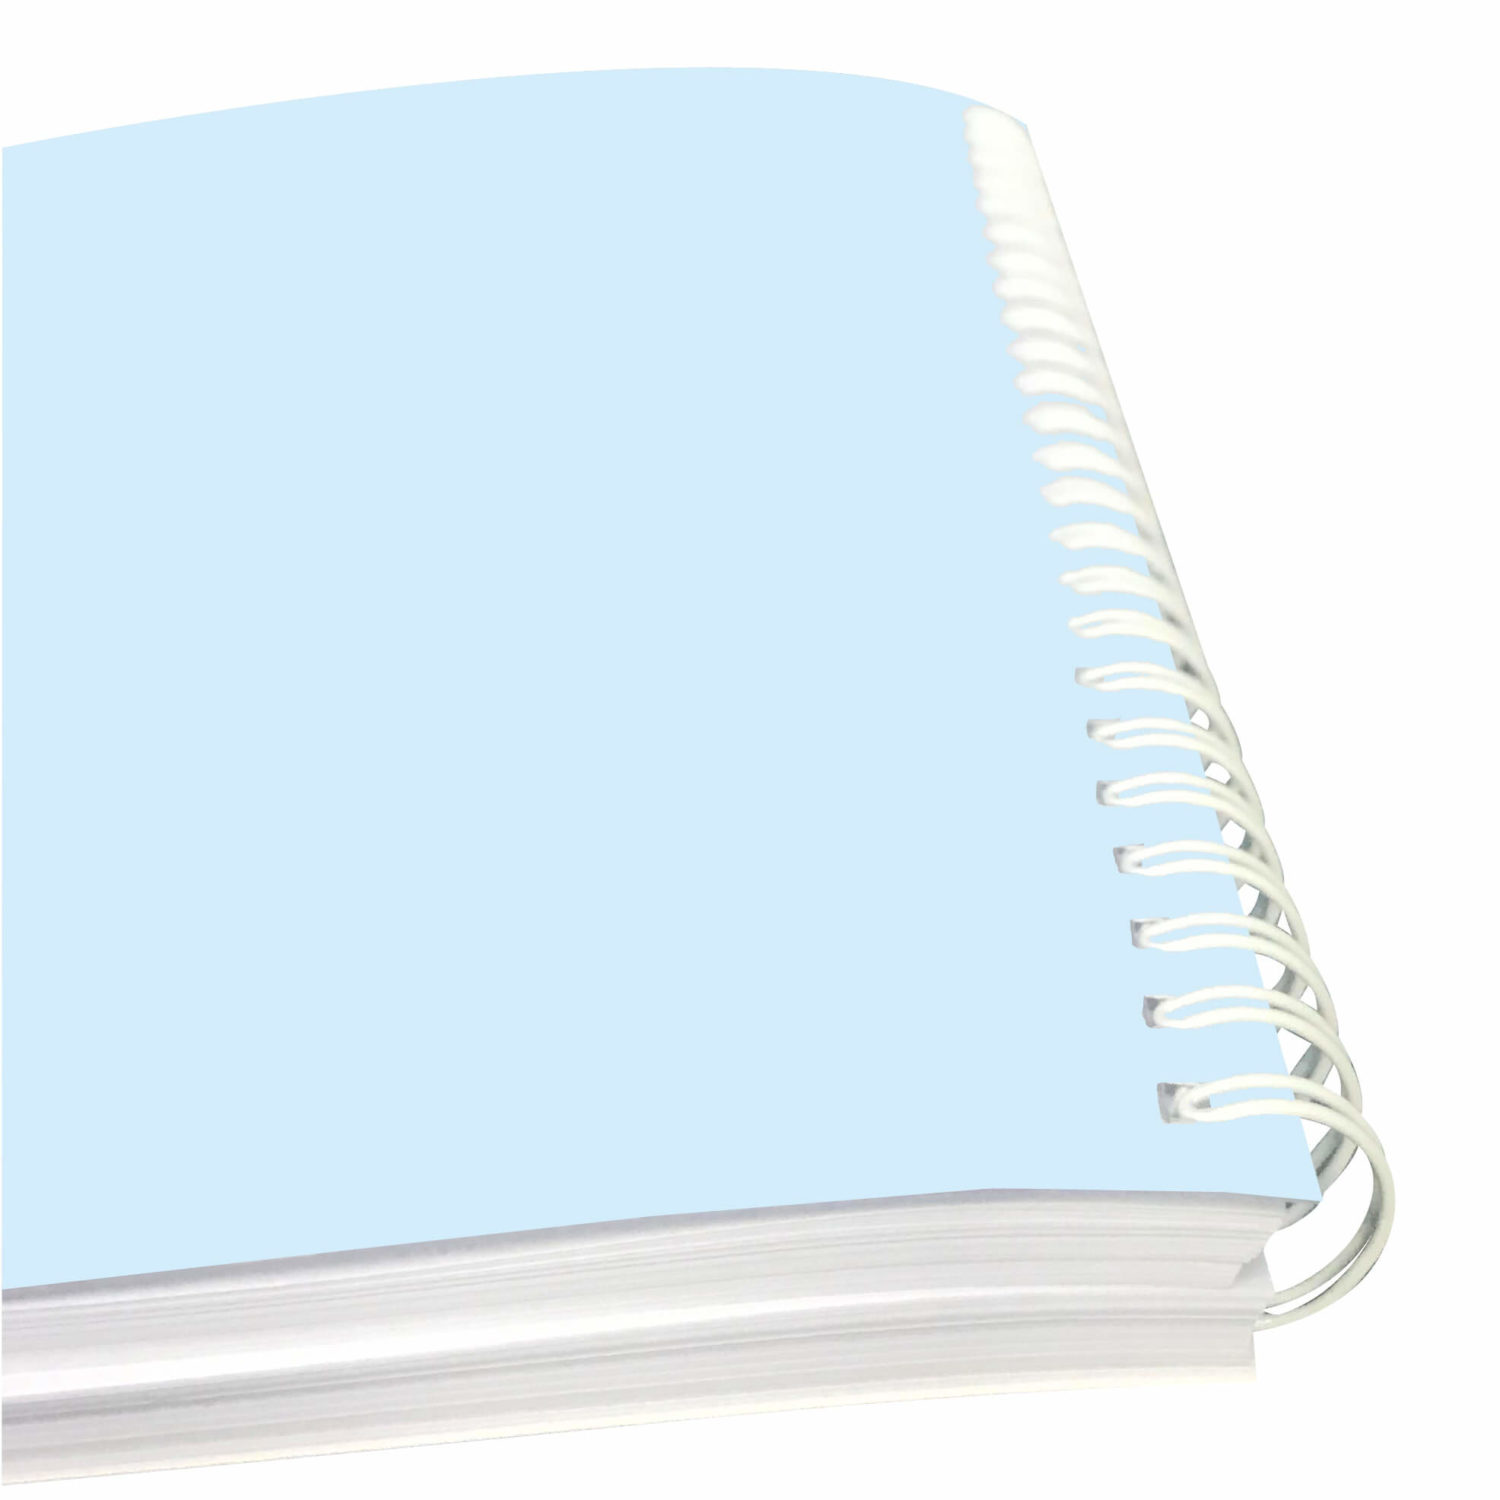 A offset 4C printed note book in wire binding, binding at a glance.